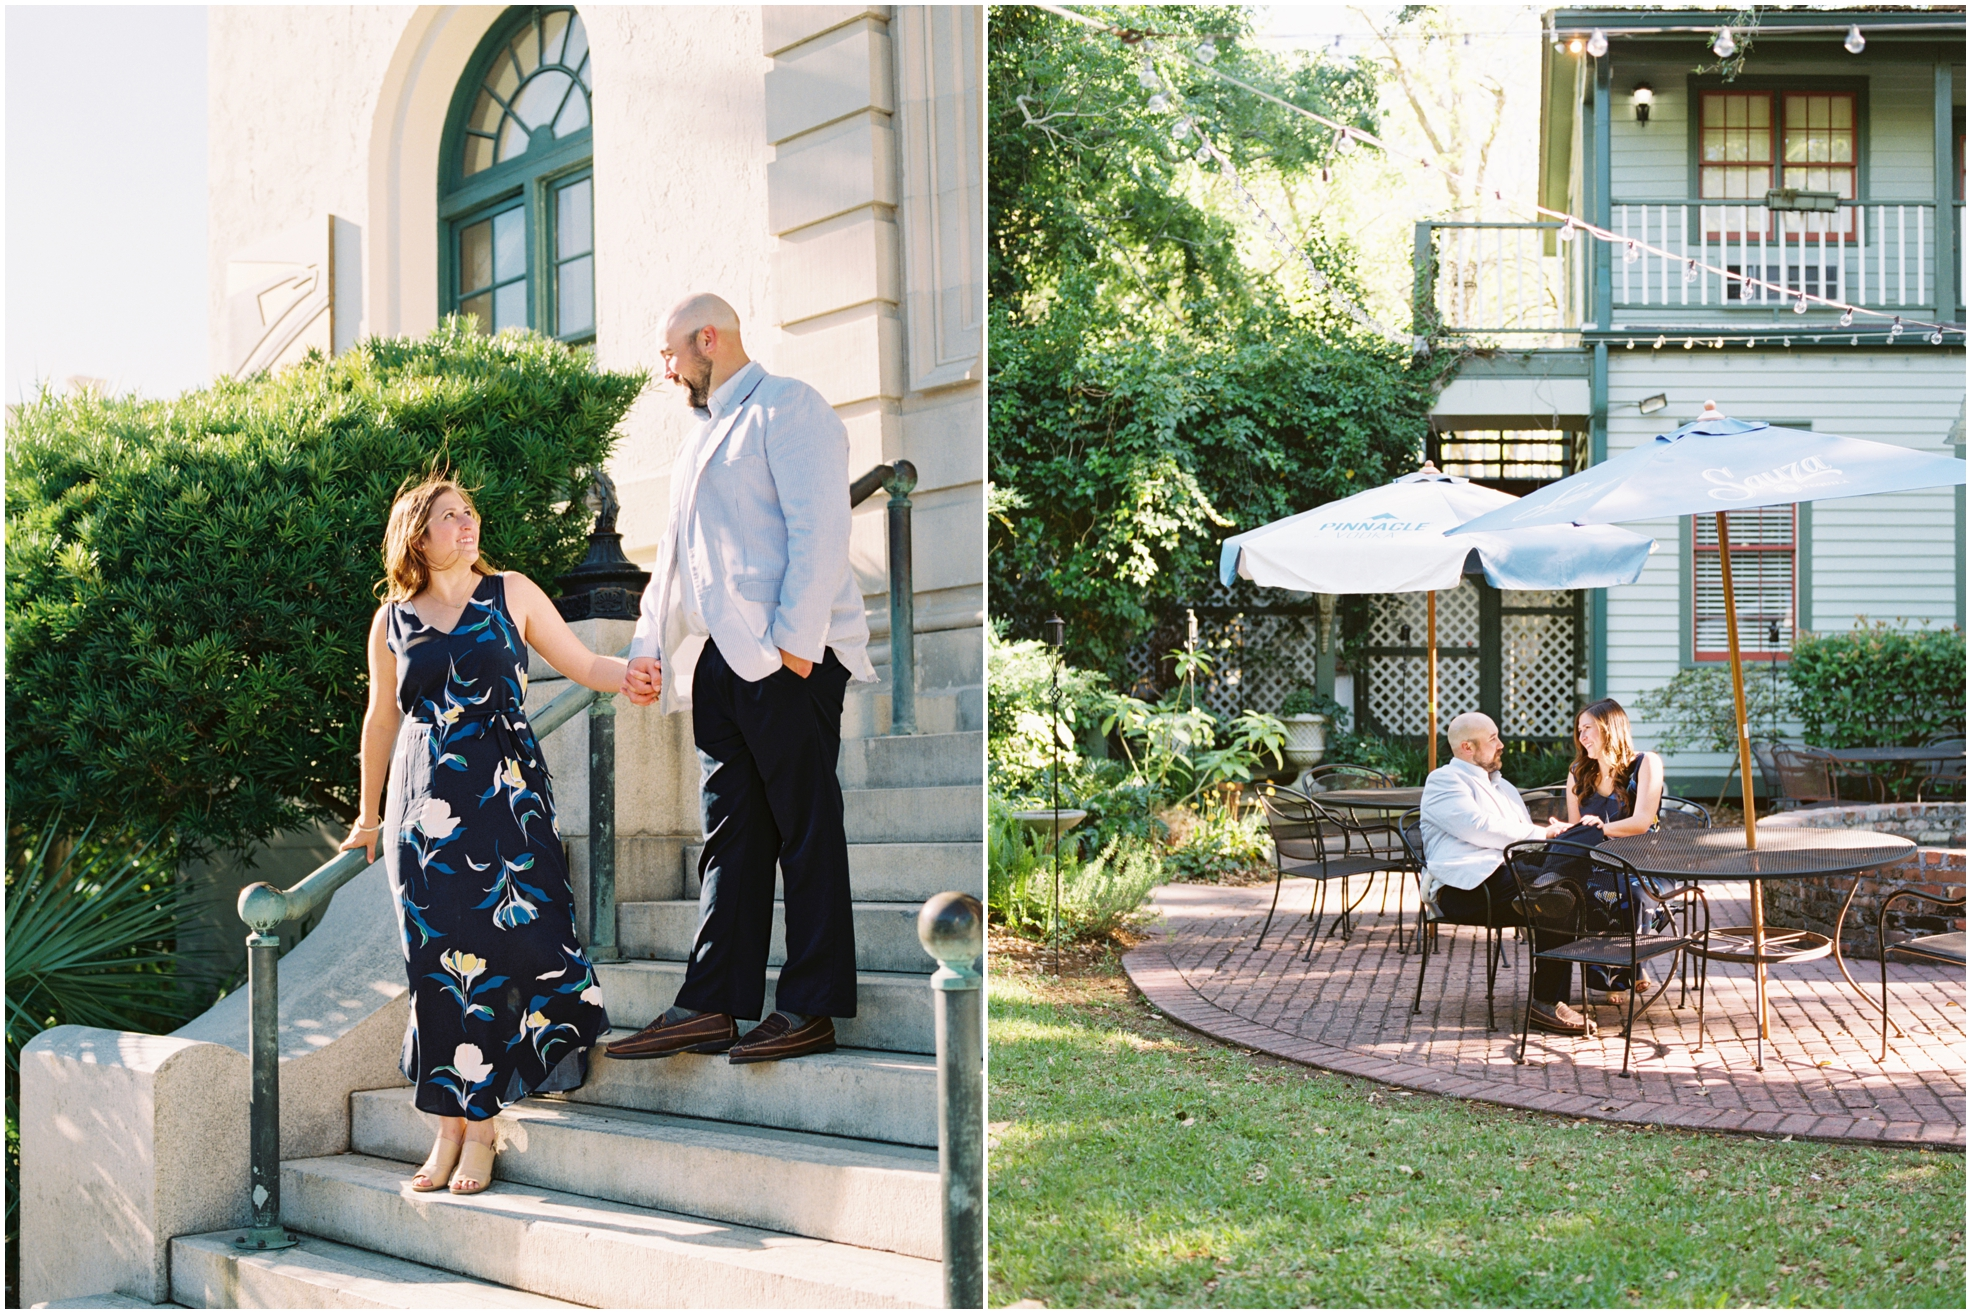 Lisa Silva Photography- Jacksonville, St. Augustine, Amelia Island, Ponte Vedra Beach, North East Florida Fine Art Film Photographer- Engagement Session in Historic Downtown Fernandina Beach- Amelia Island Wedding Photographer_0020.jpg